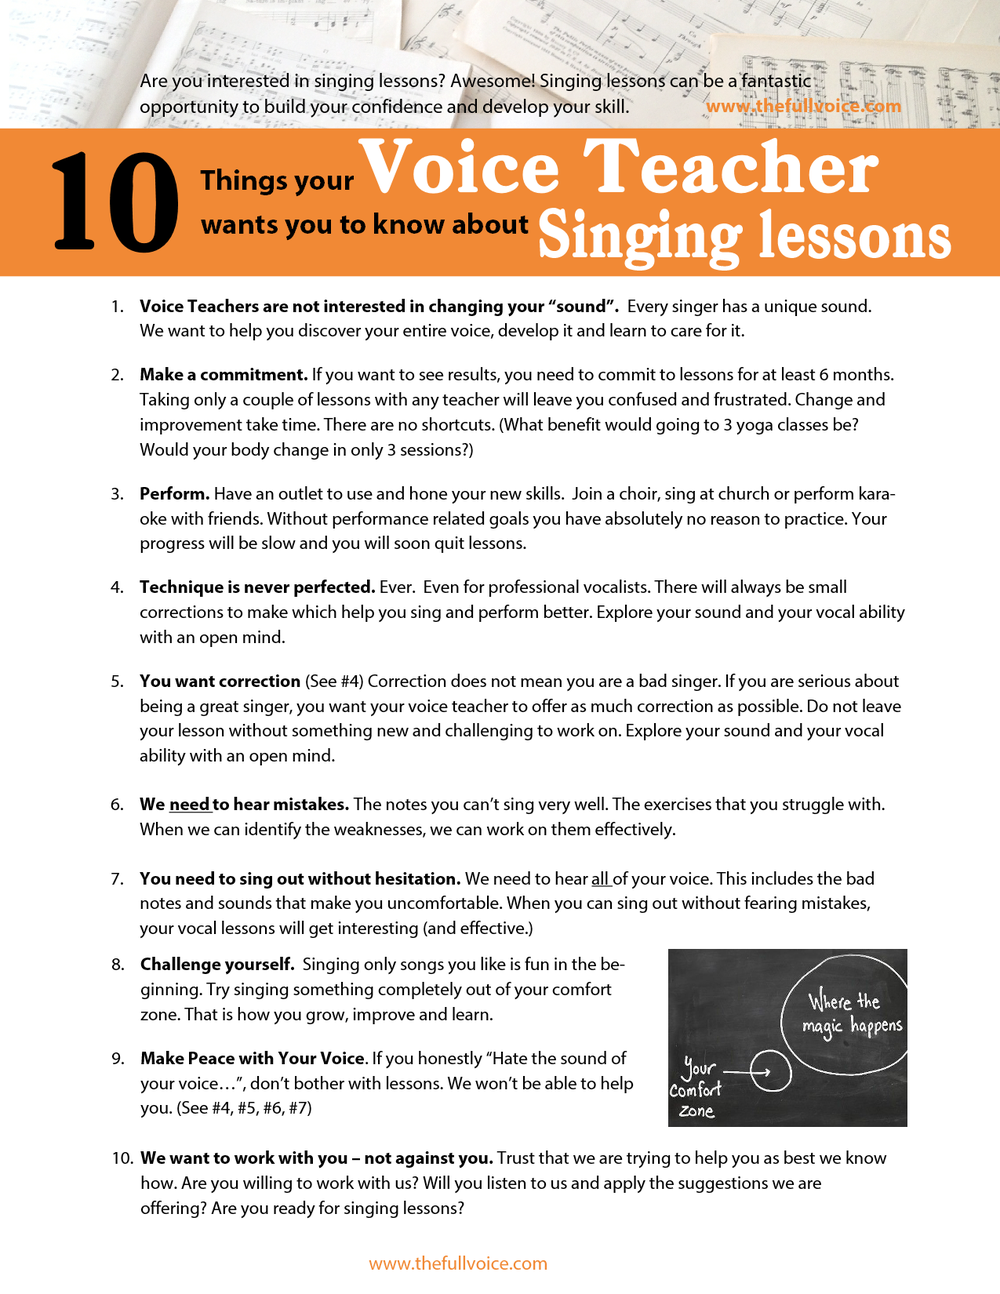 Pin by Kathy Yale on Voice | Vocal lessons, Singing lessons